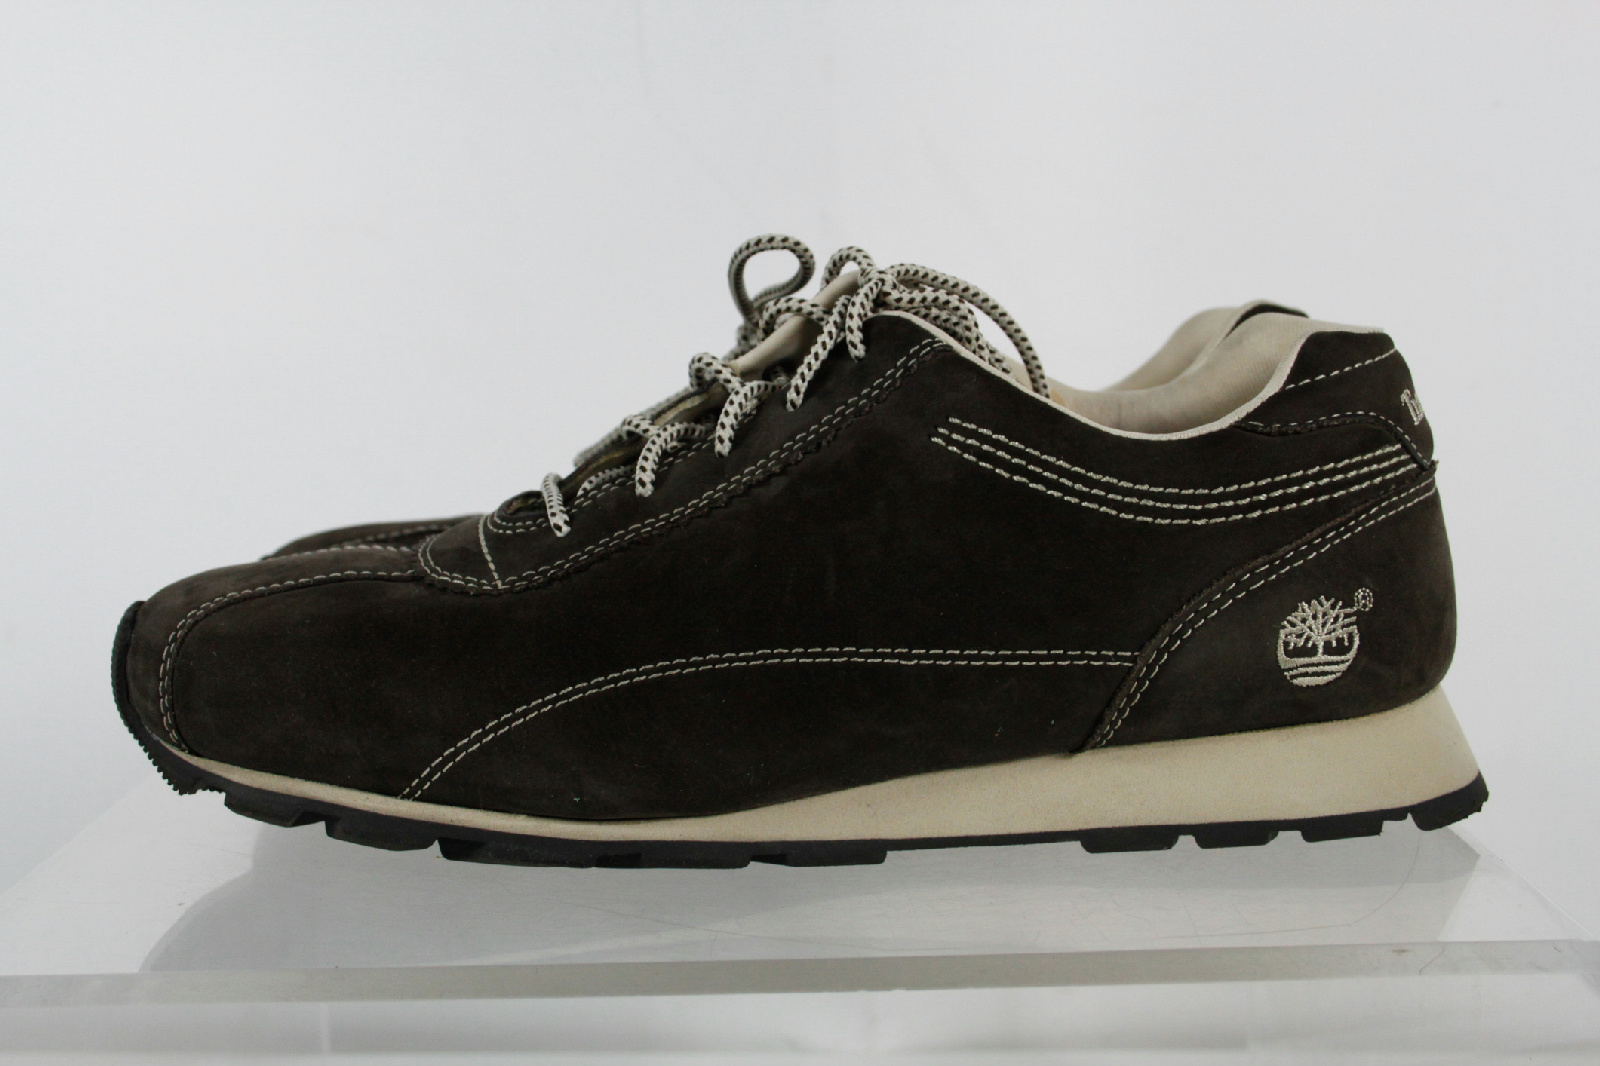 Timberland Black Suede Lace Up Athletic Sport Fashion Sneaker Shoes Sz 9 M | EBay